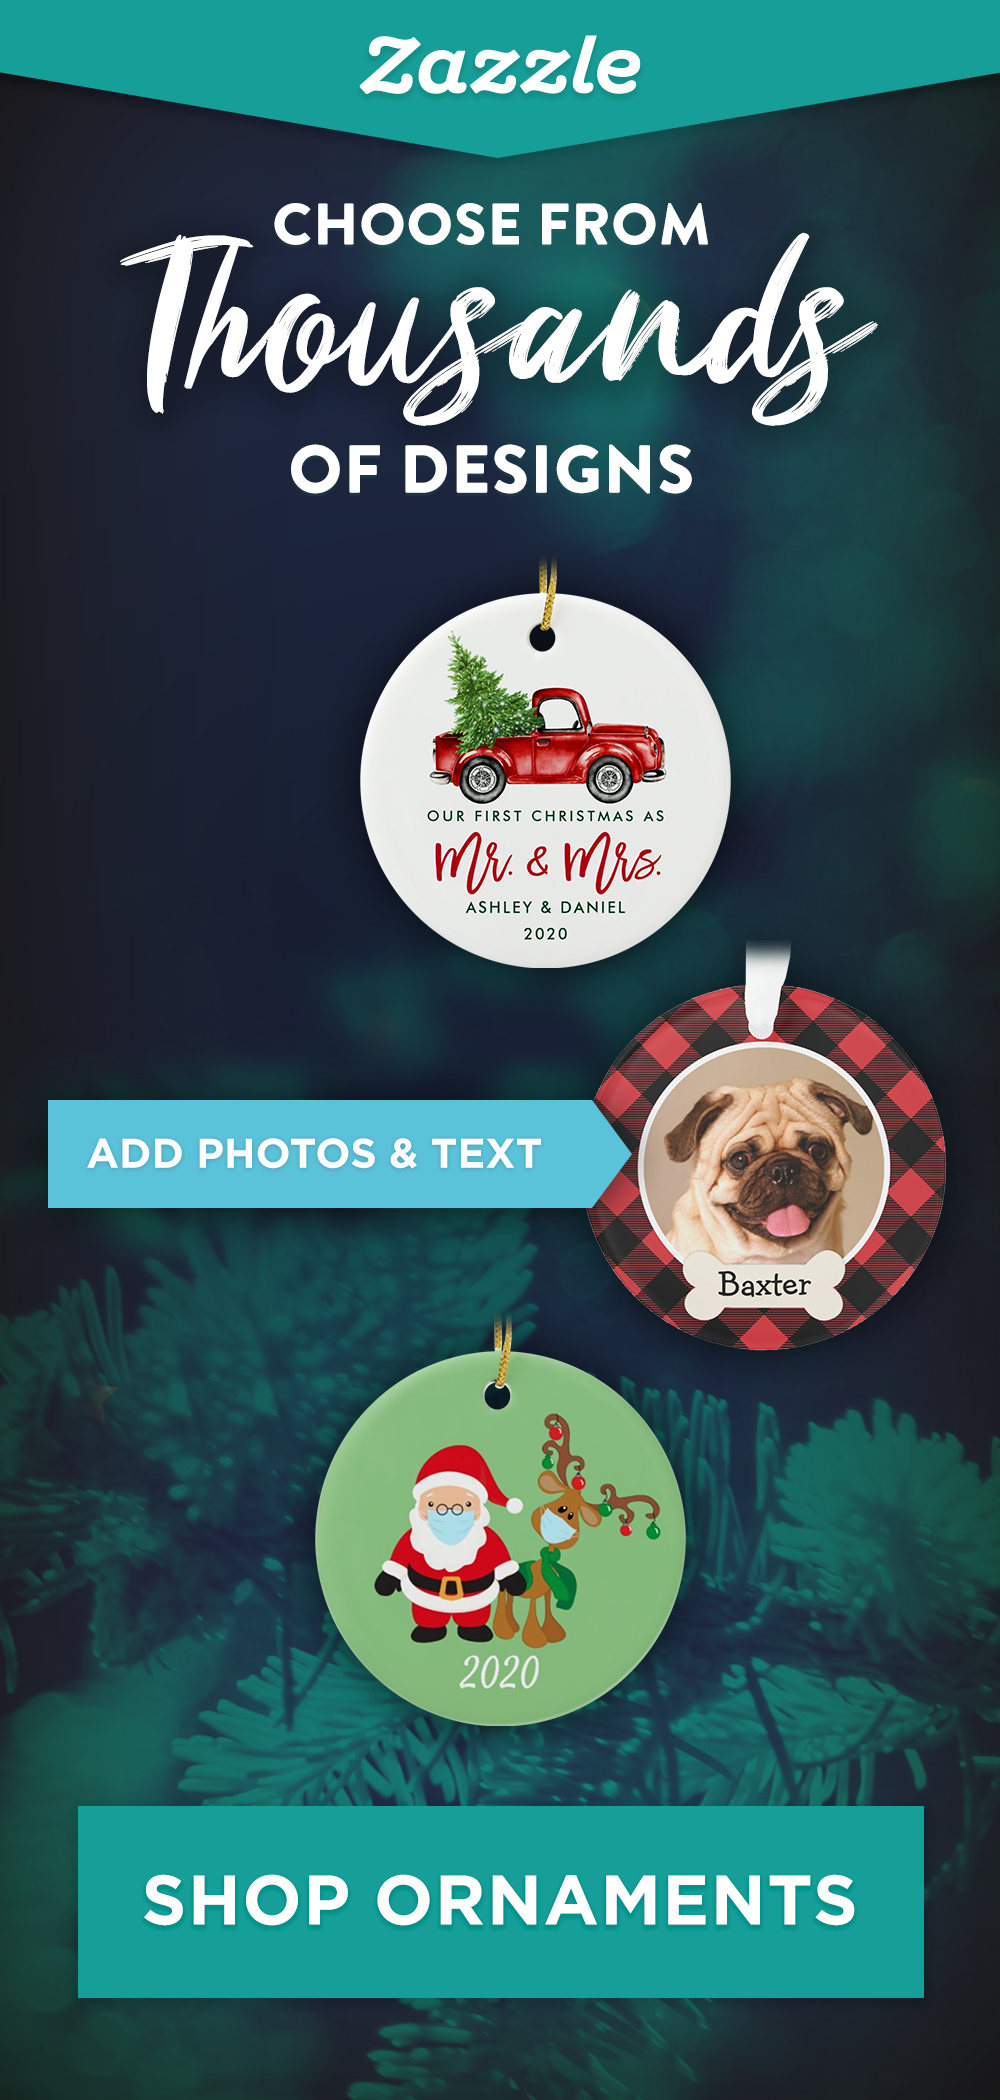 Make in minutes, cherish forever. Browse ornaments featuring your favorite photos, your pet, or create a Disney ornament for the kids. Choose from thousands of designs and customize with text and photos.